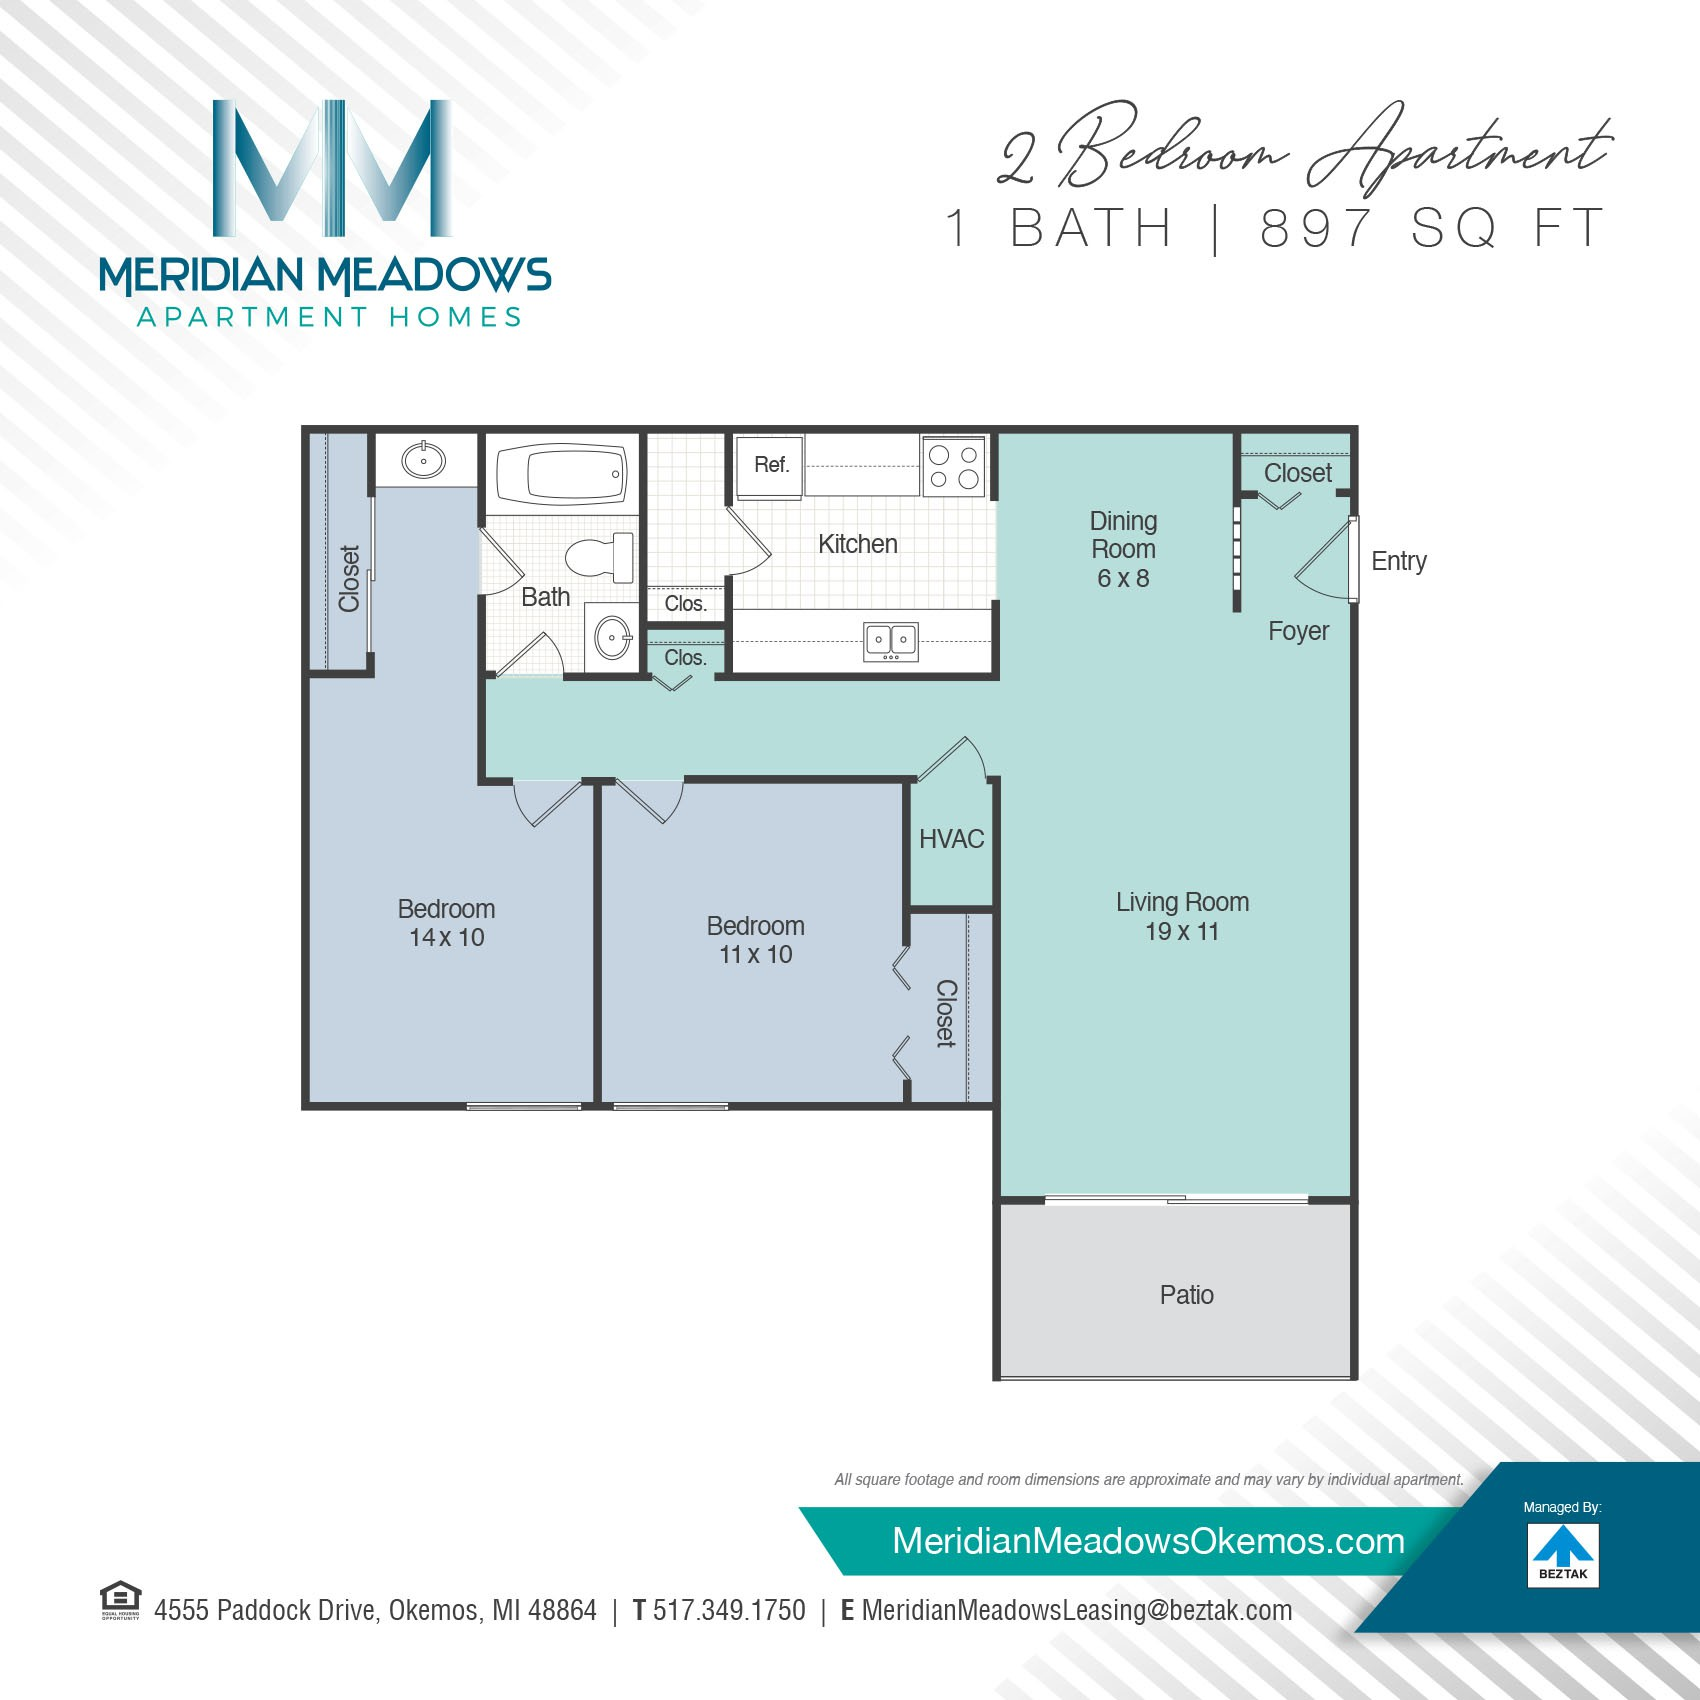 Meridian Meadows Apartments